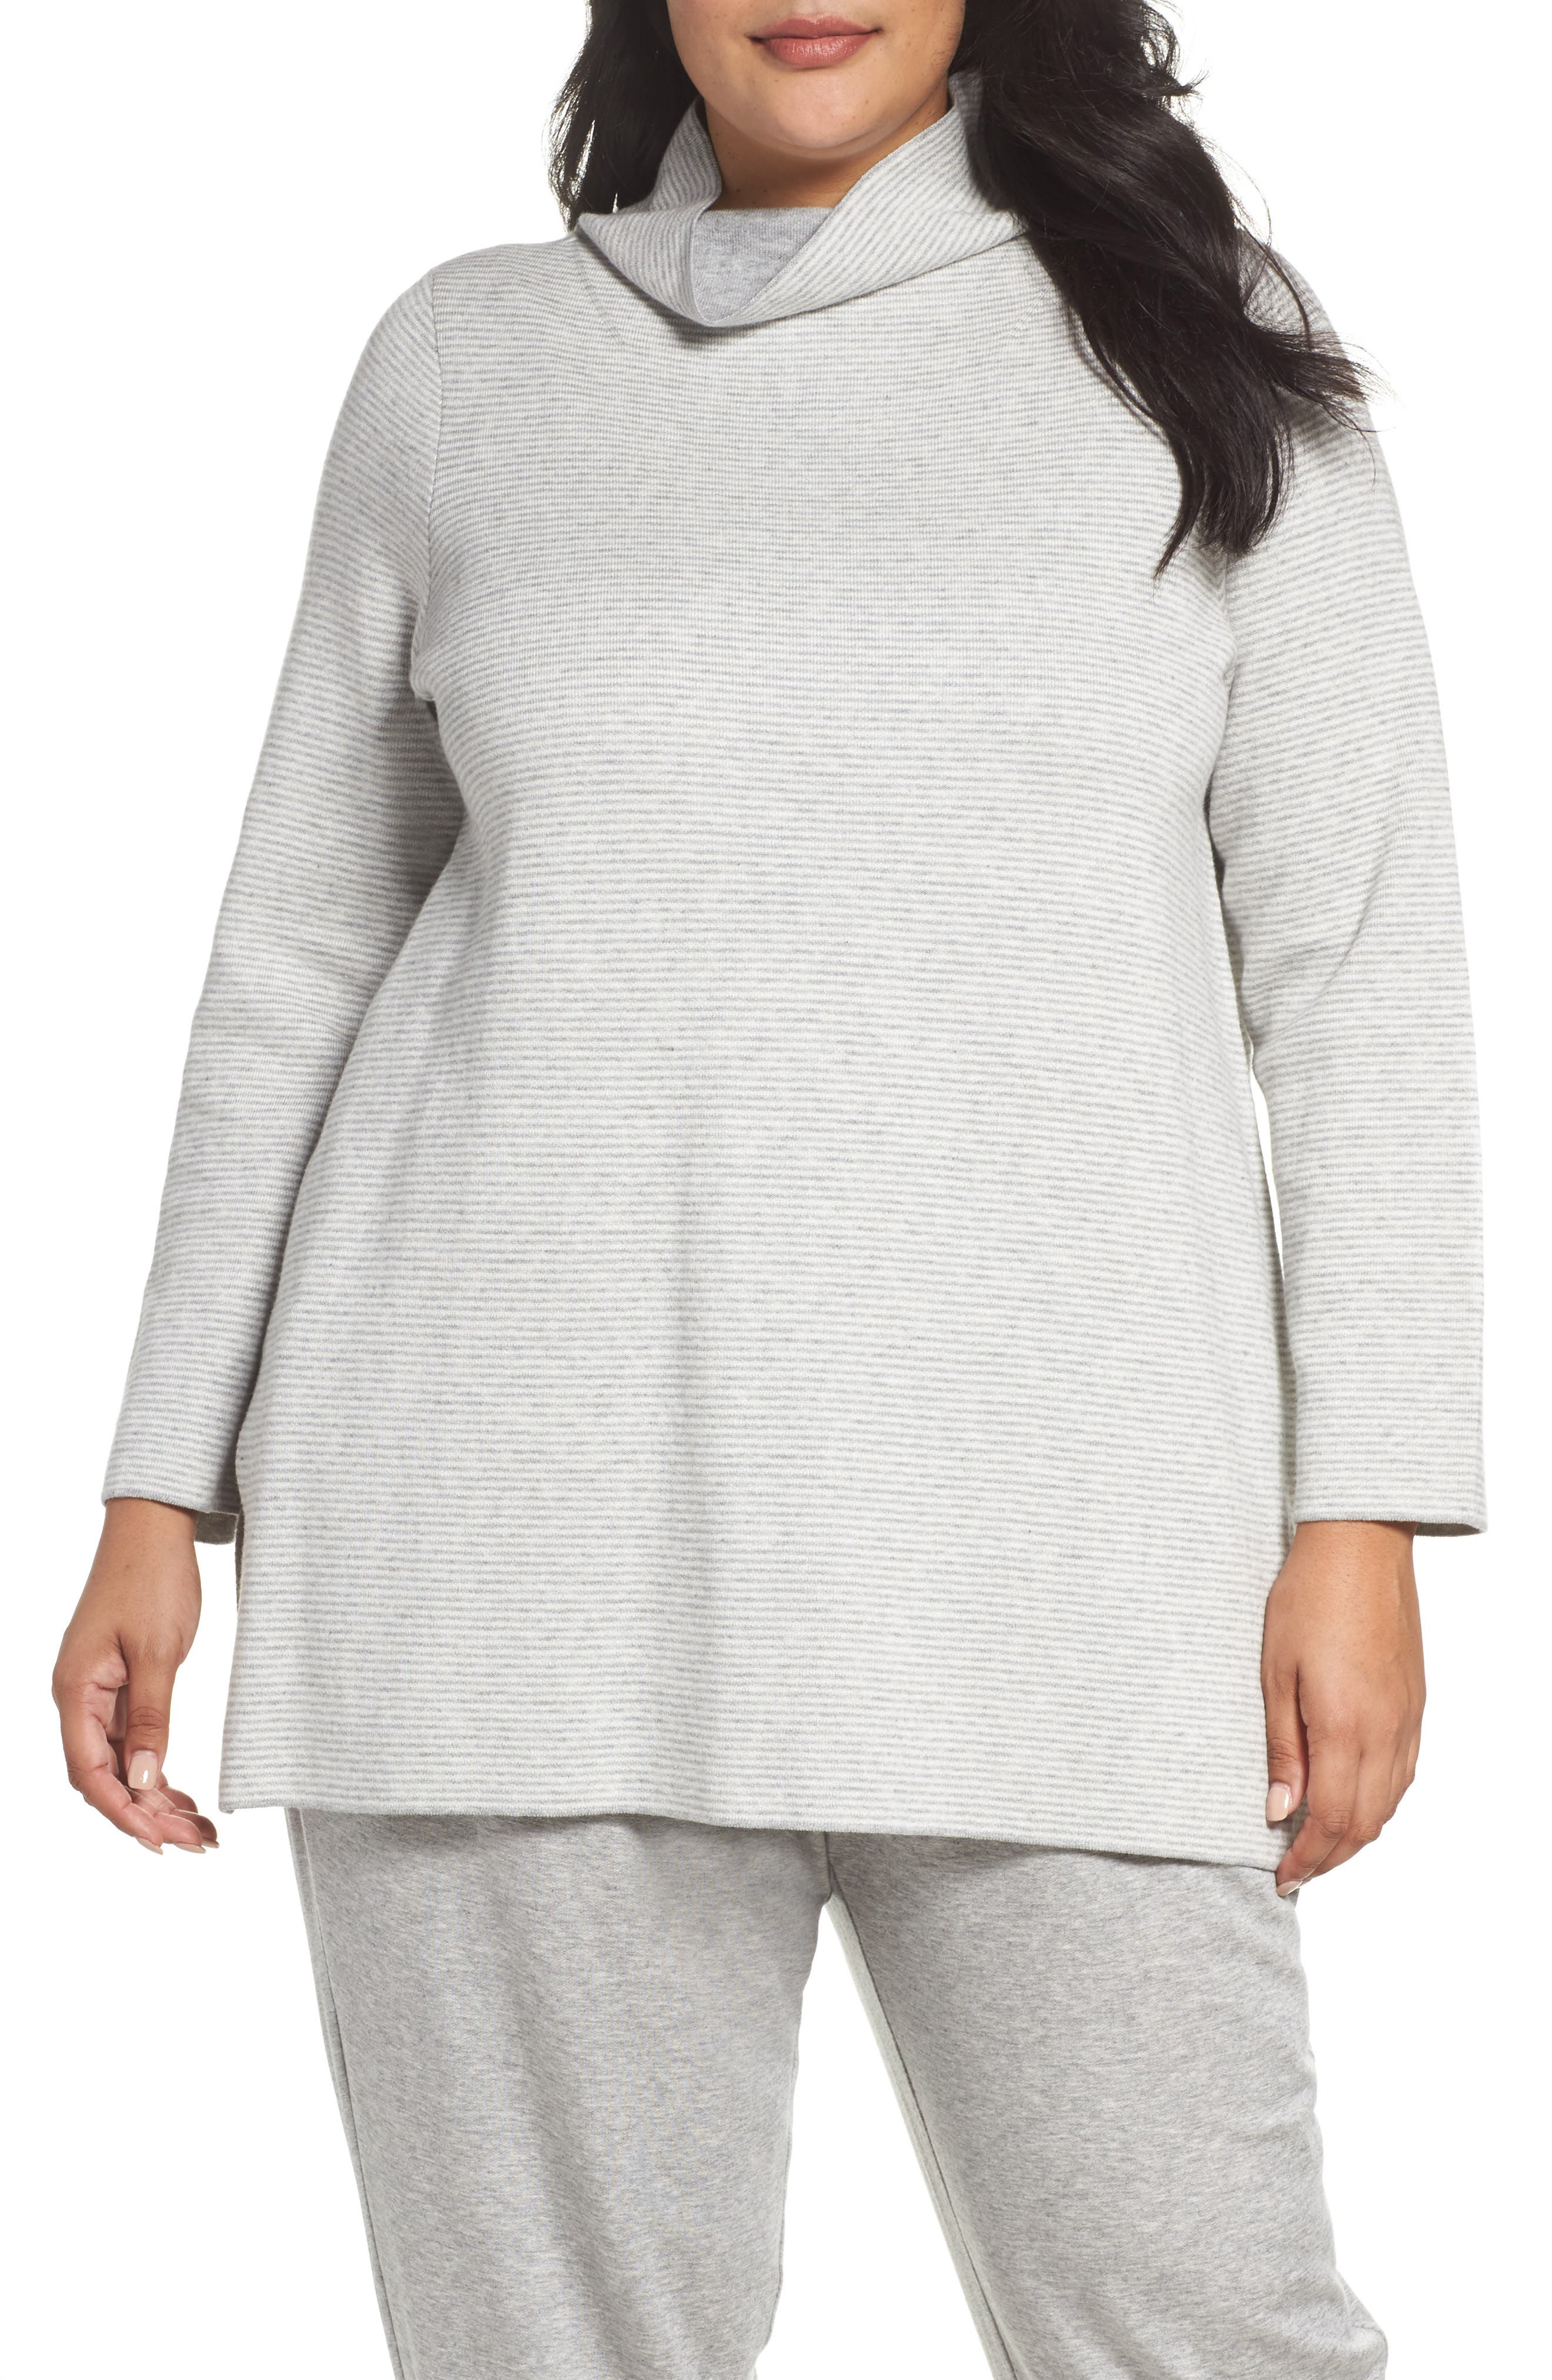 Alternate Image 1 Selected - Eileen Fisher Reversible Funnel Neck Tunic Sweater (Plus Size)